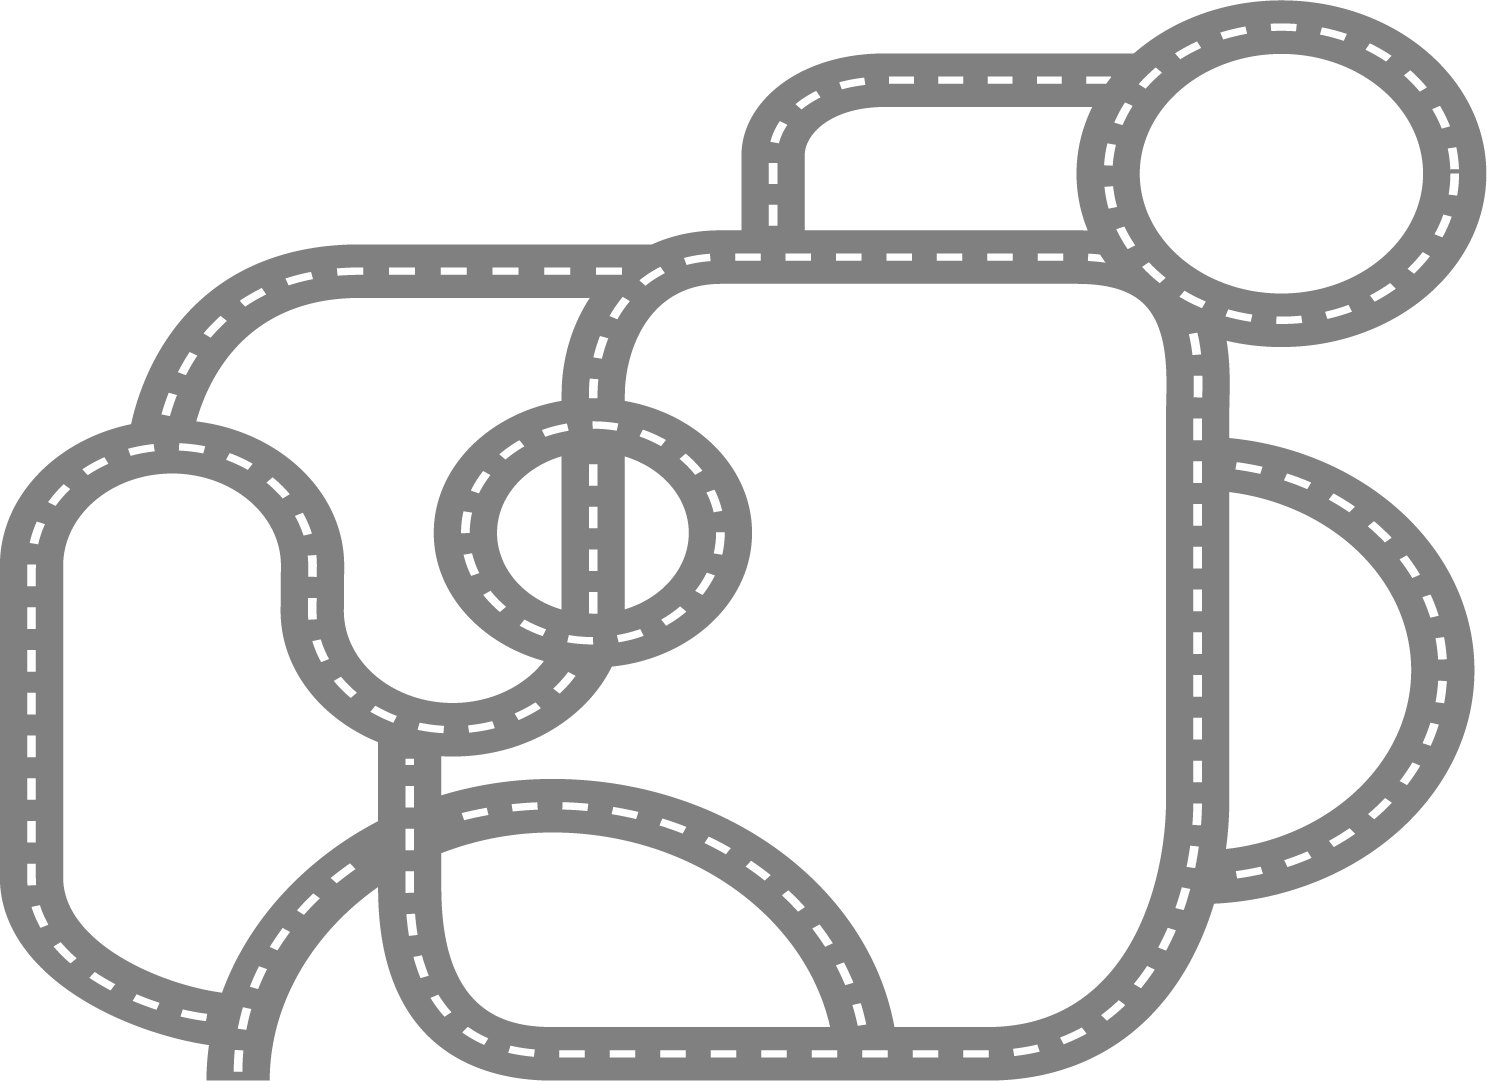 Racetrack number 1 clipart graphic free Racetrack number 1 clipart - ClipartFest graphic free